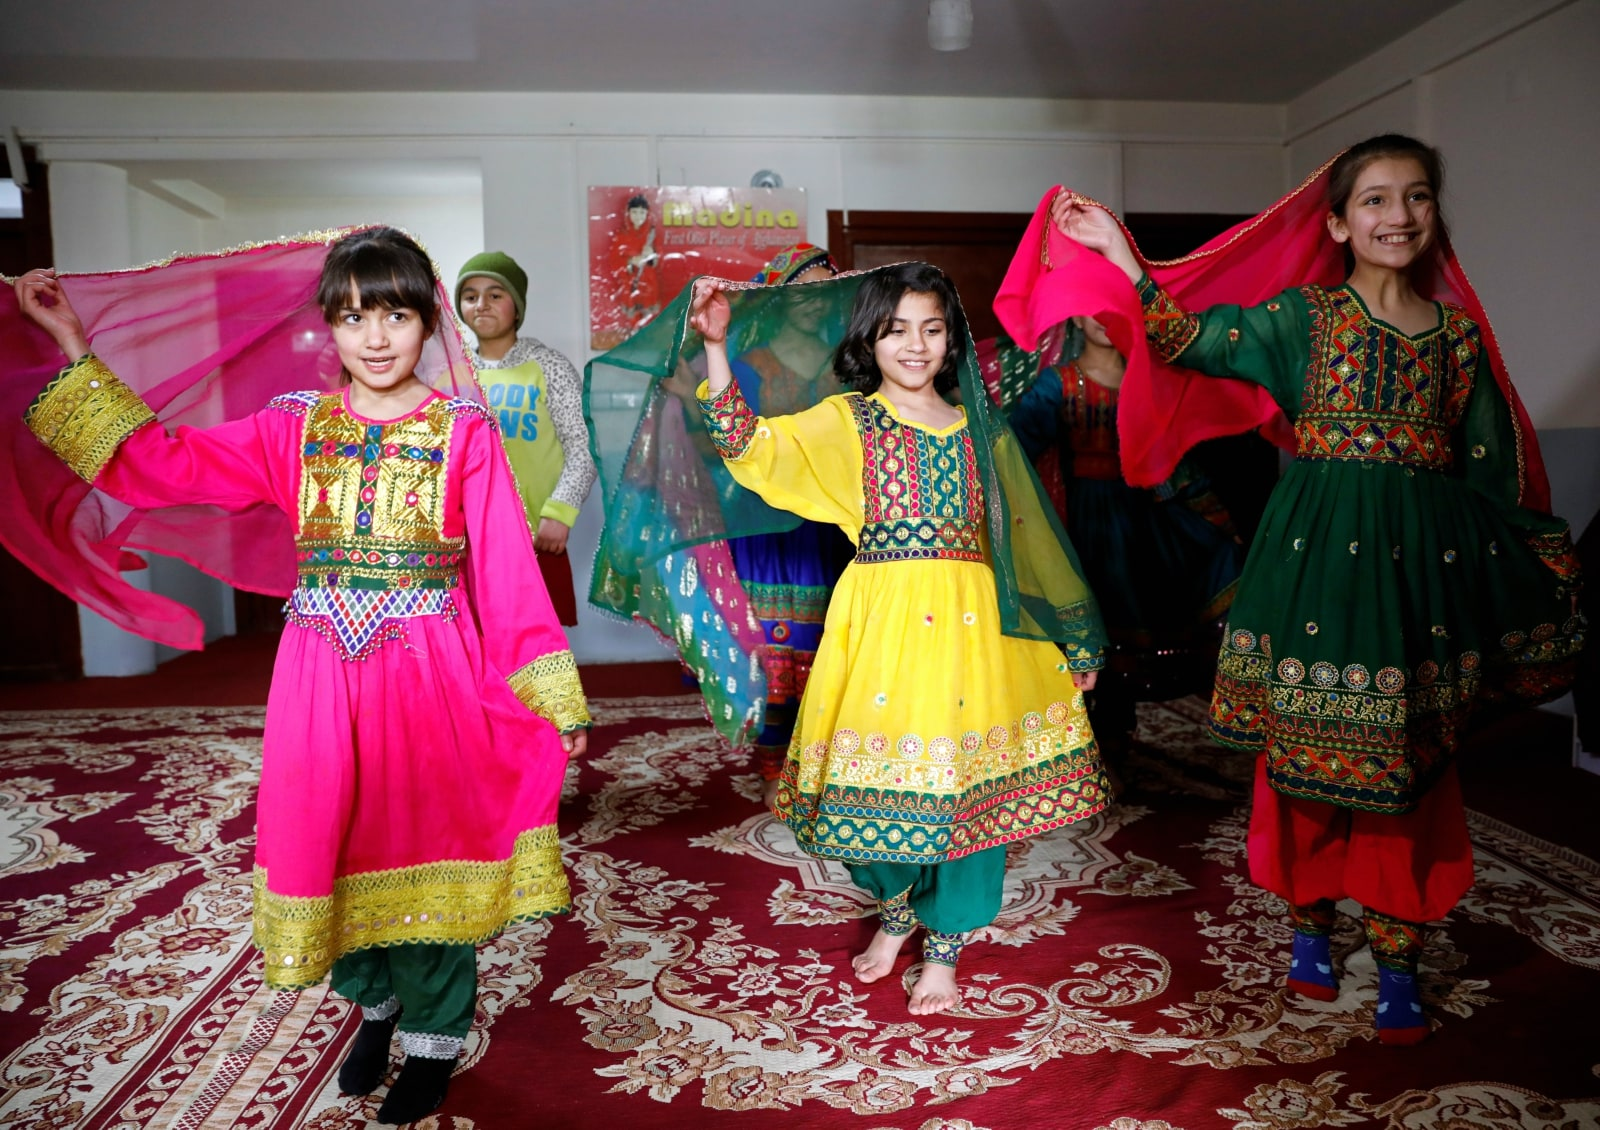 Afghan girls practice a traditional dance at an Afghan Child Education and Care Organization center (AFCECO) in Kabul, Afghanistan March 3, 2019. REUTERS/Mohammad Ismail